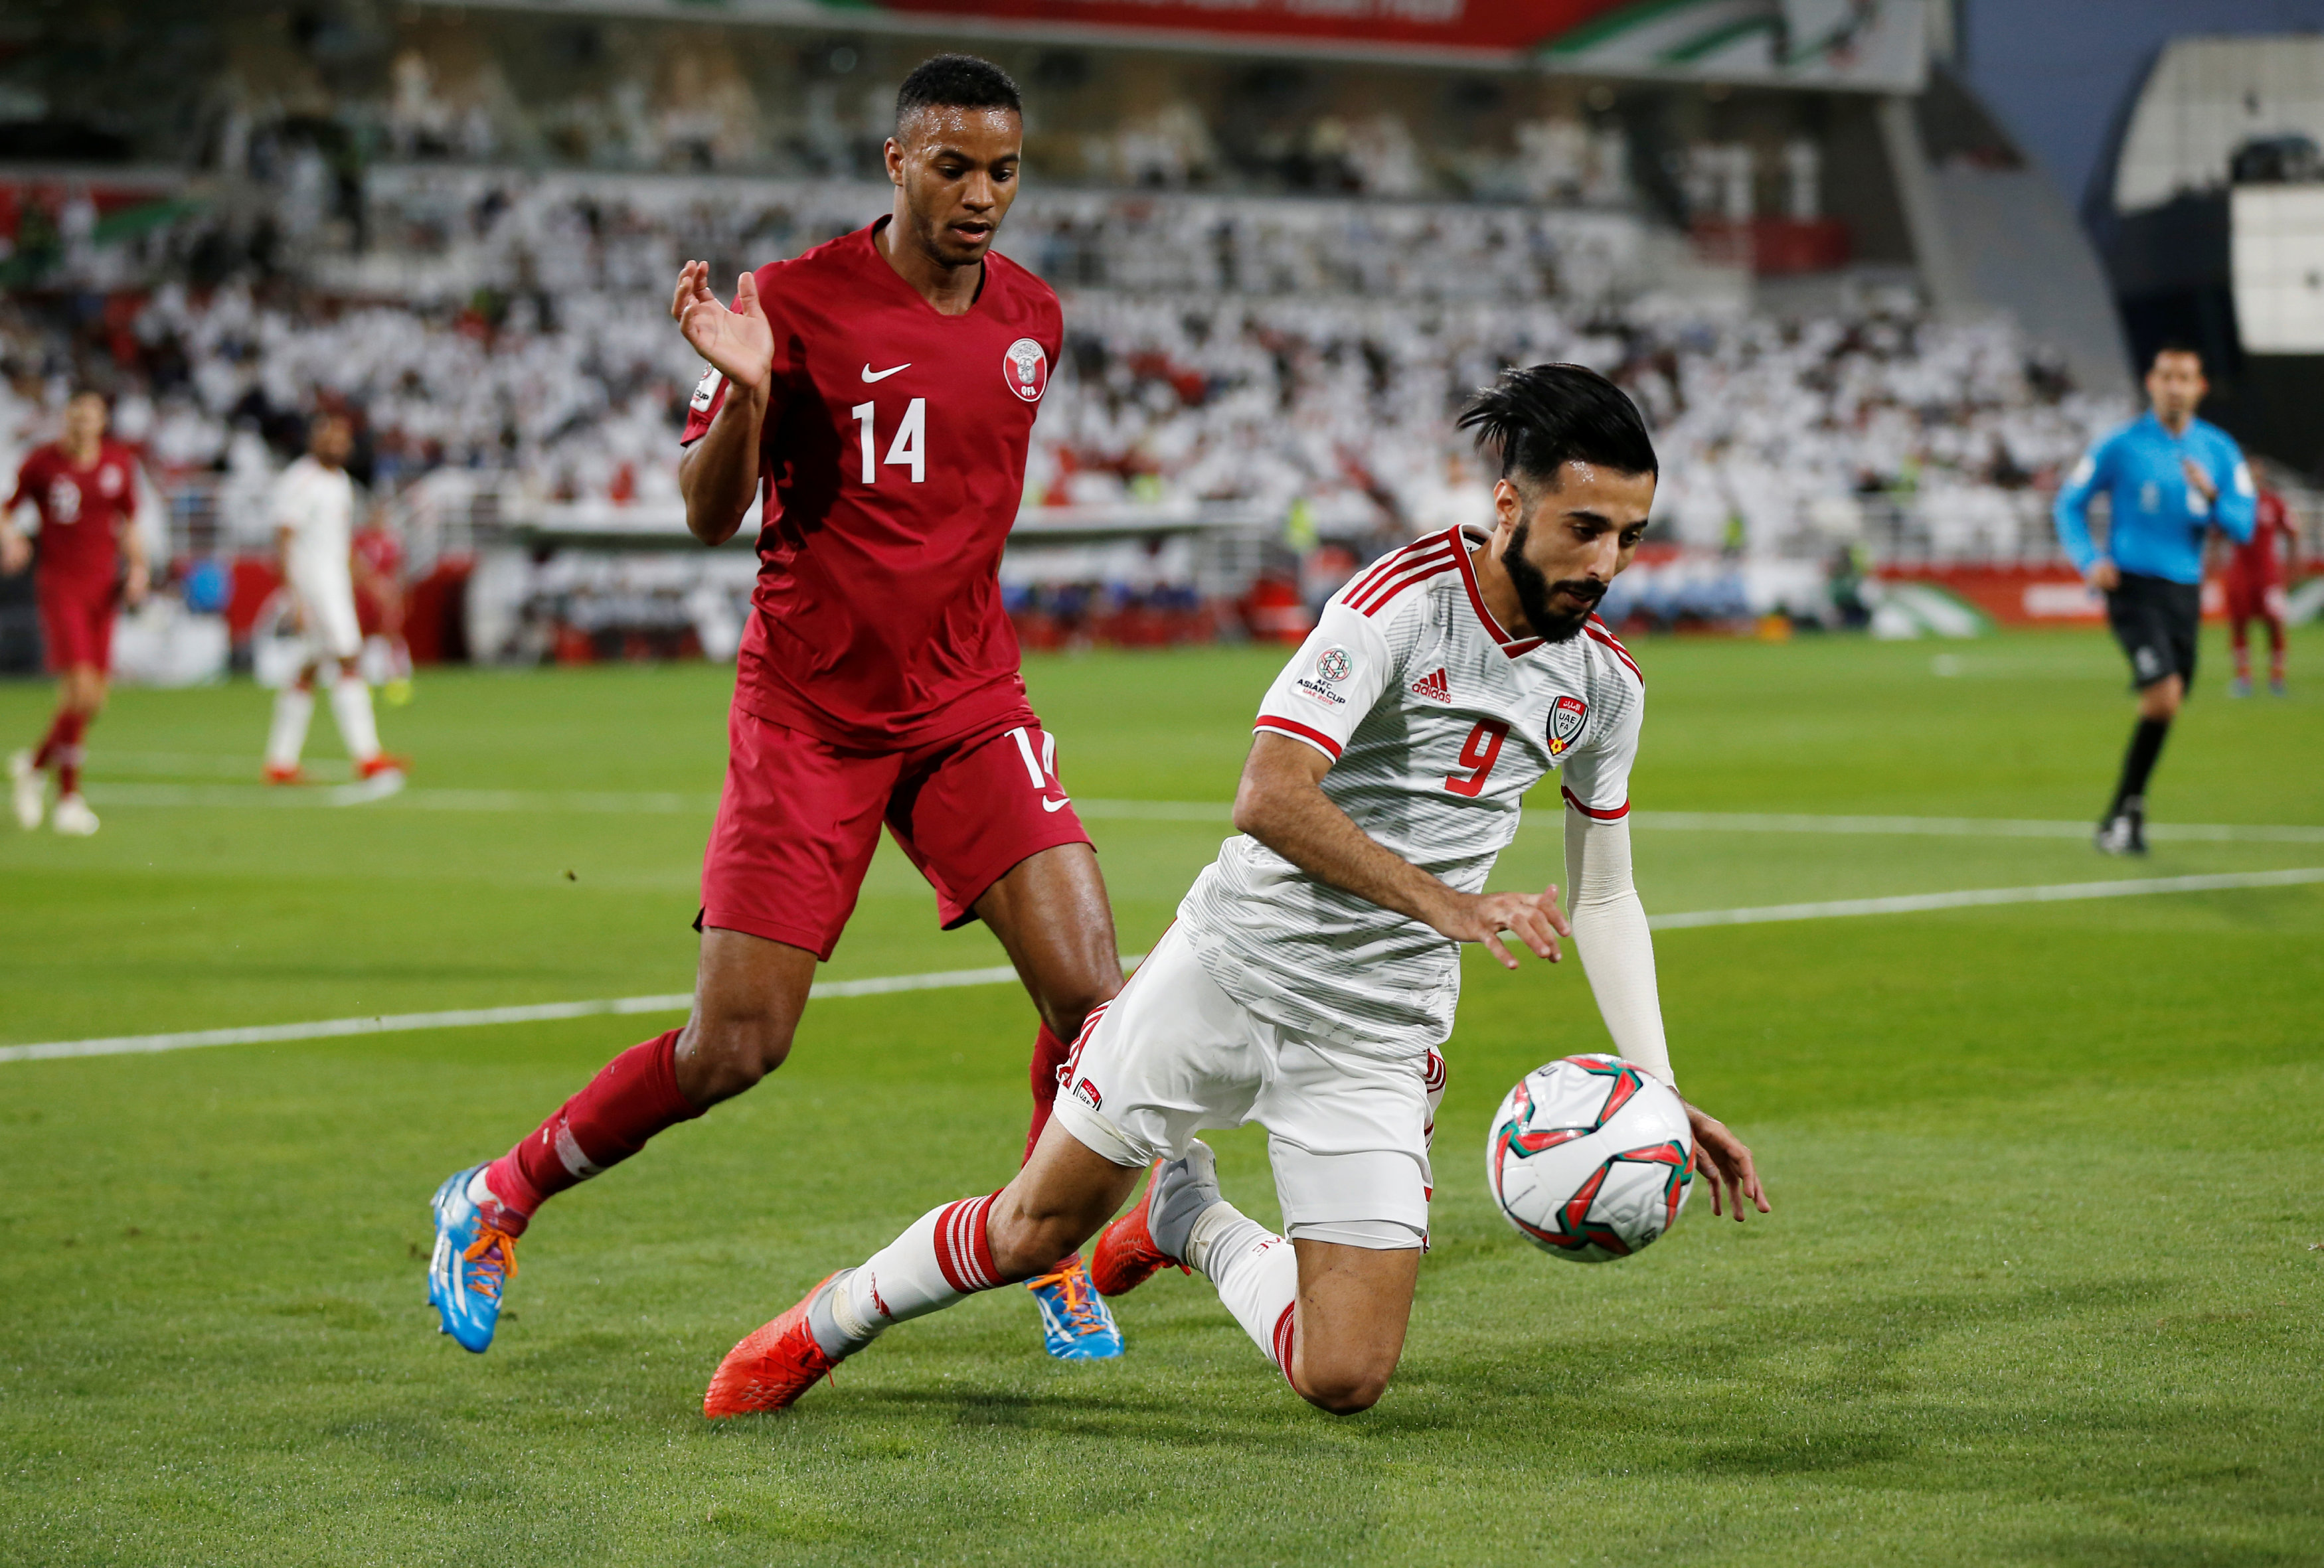 2019-01-29T145427Z_2121009037_RC18B1D3B250_RTRMADP_3_SOCCER-ASIANCUP-QAT-ARE